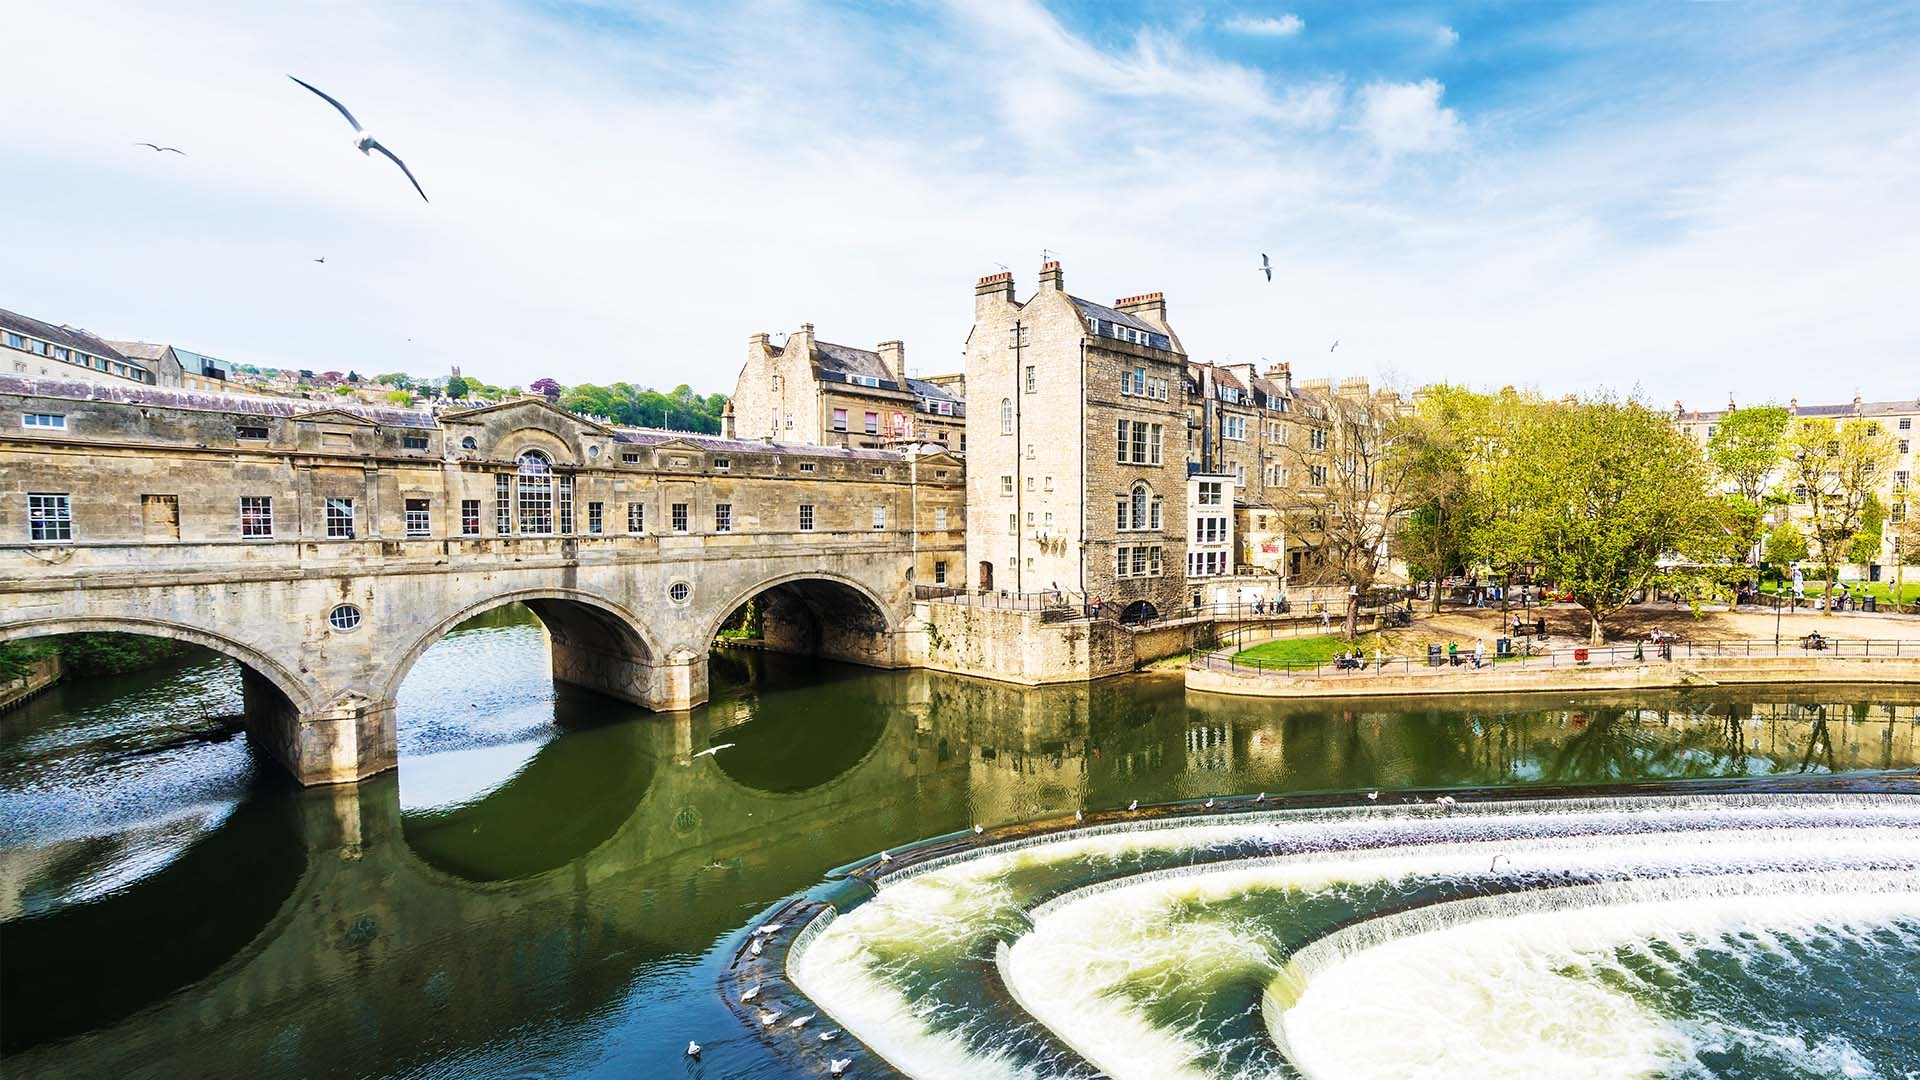 The Historic City of Bath, England | hubpages